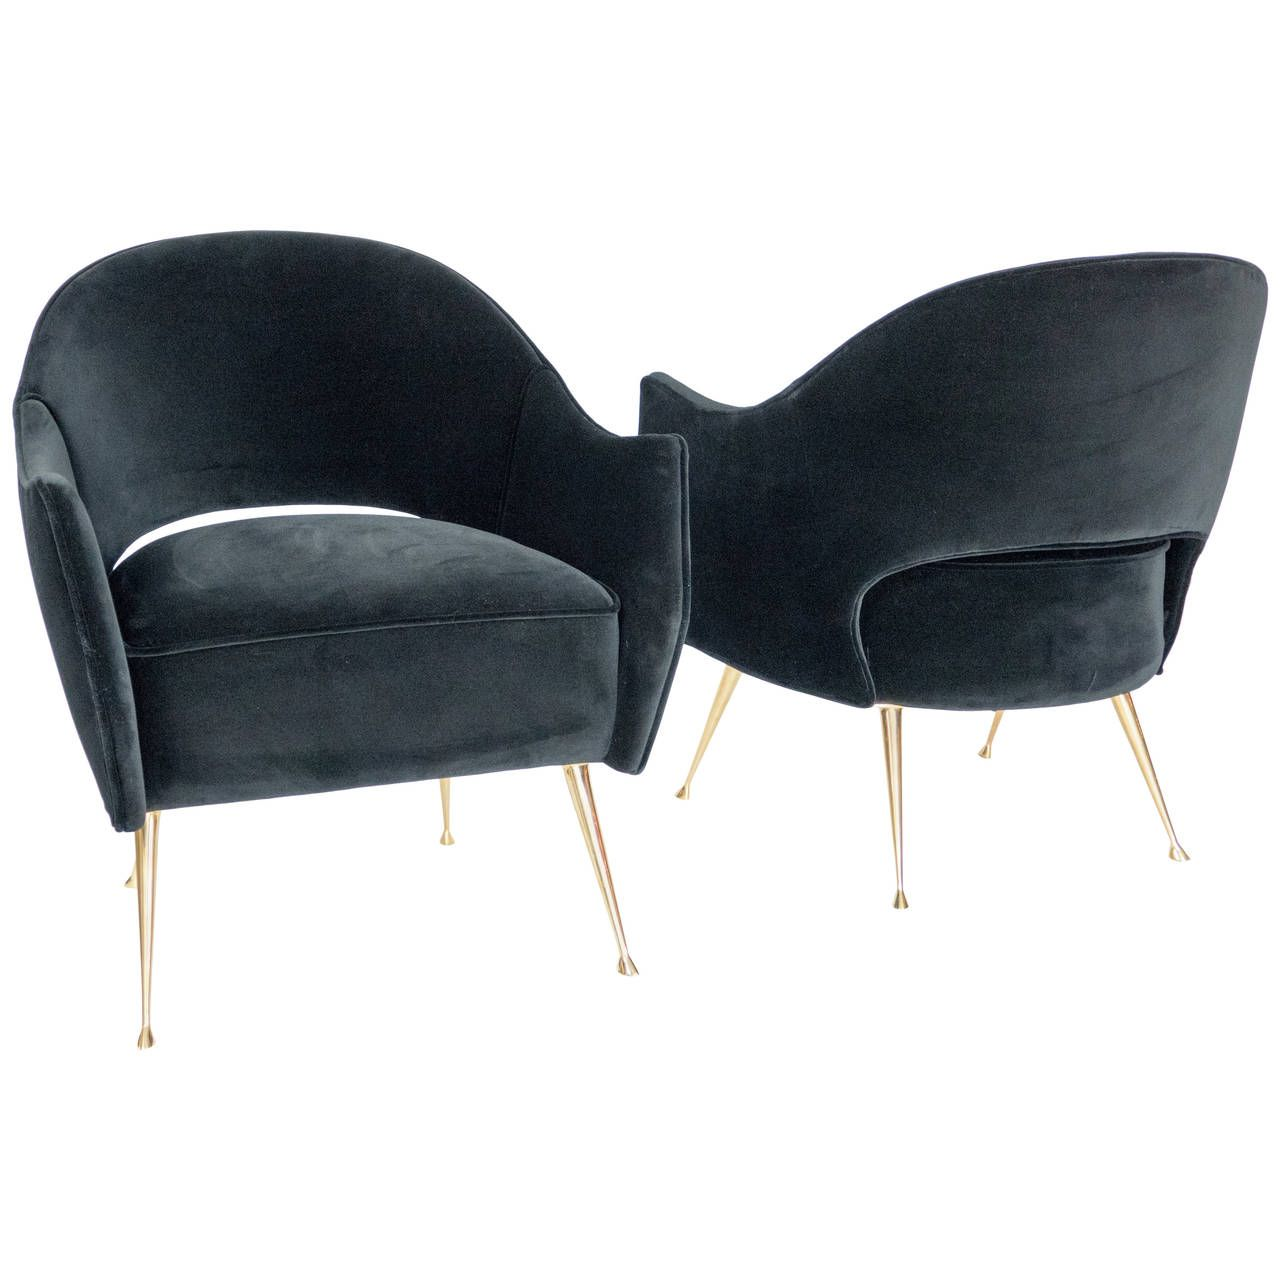 Pair of Briance Side Chairs | From a unique collection of antique and modern armchairs at https://www.1stdibs.com/furniture/seating/armchairs/